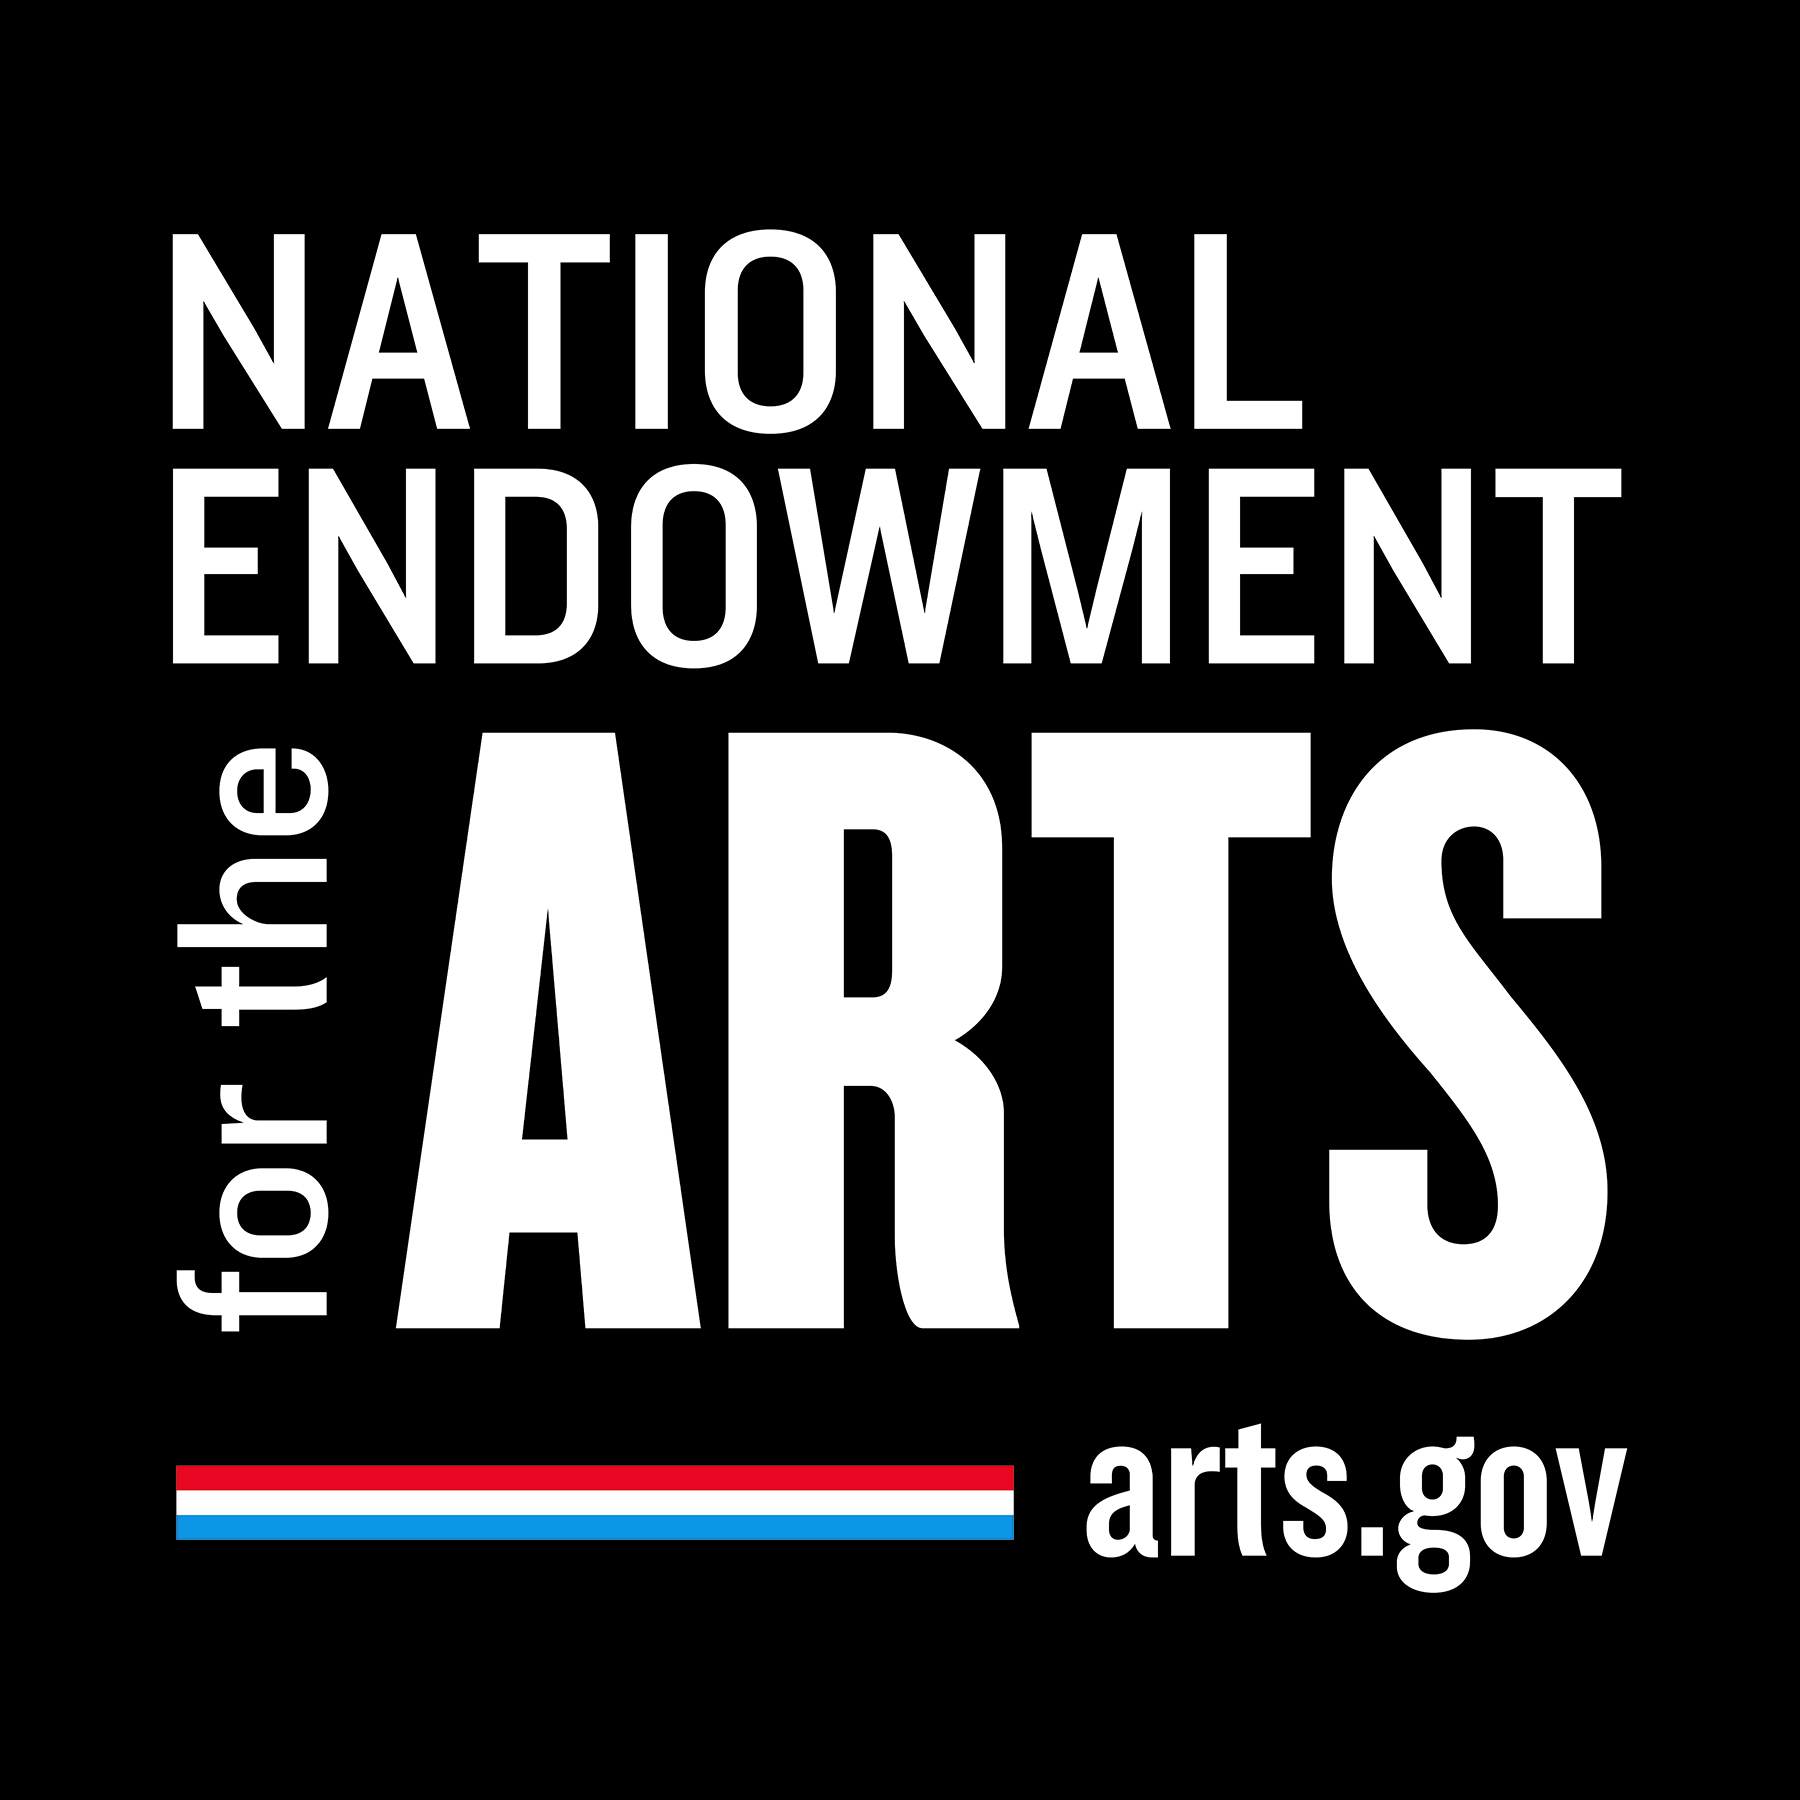 National Endowment for the Arts logo in black and white